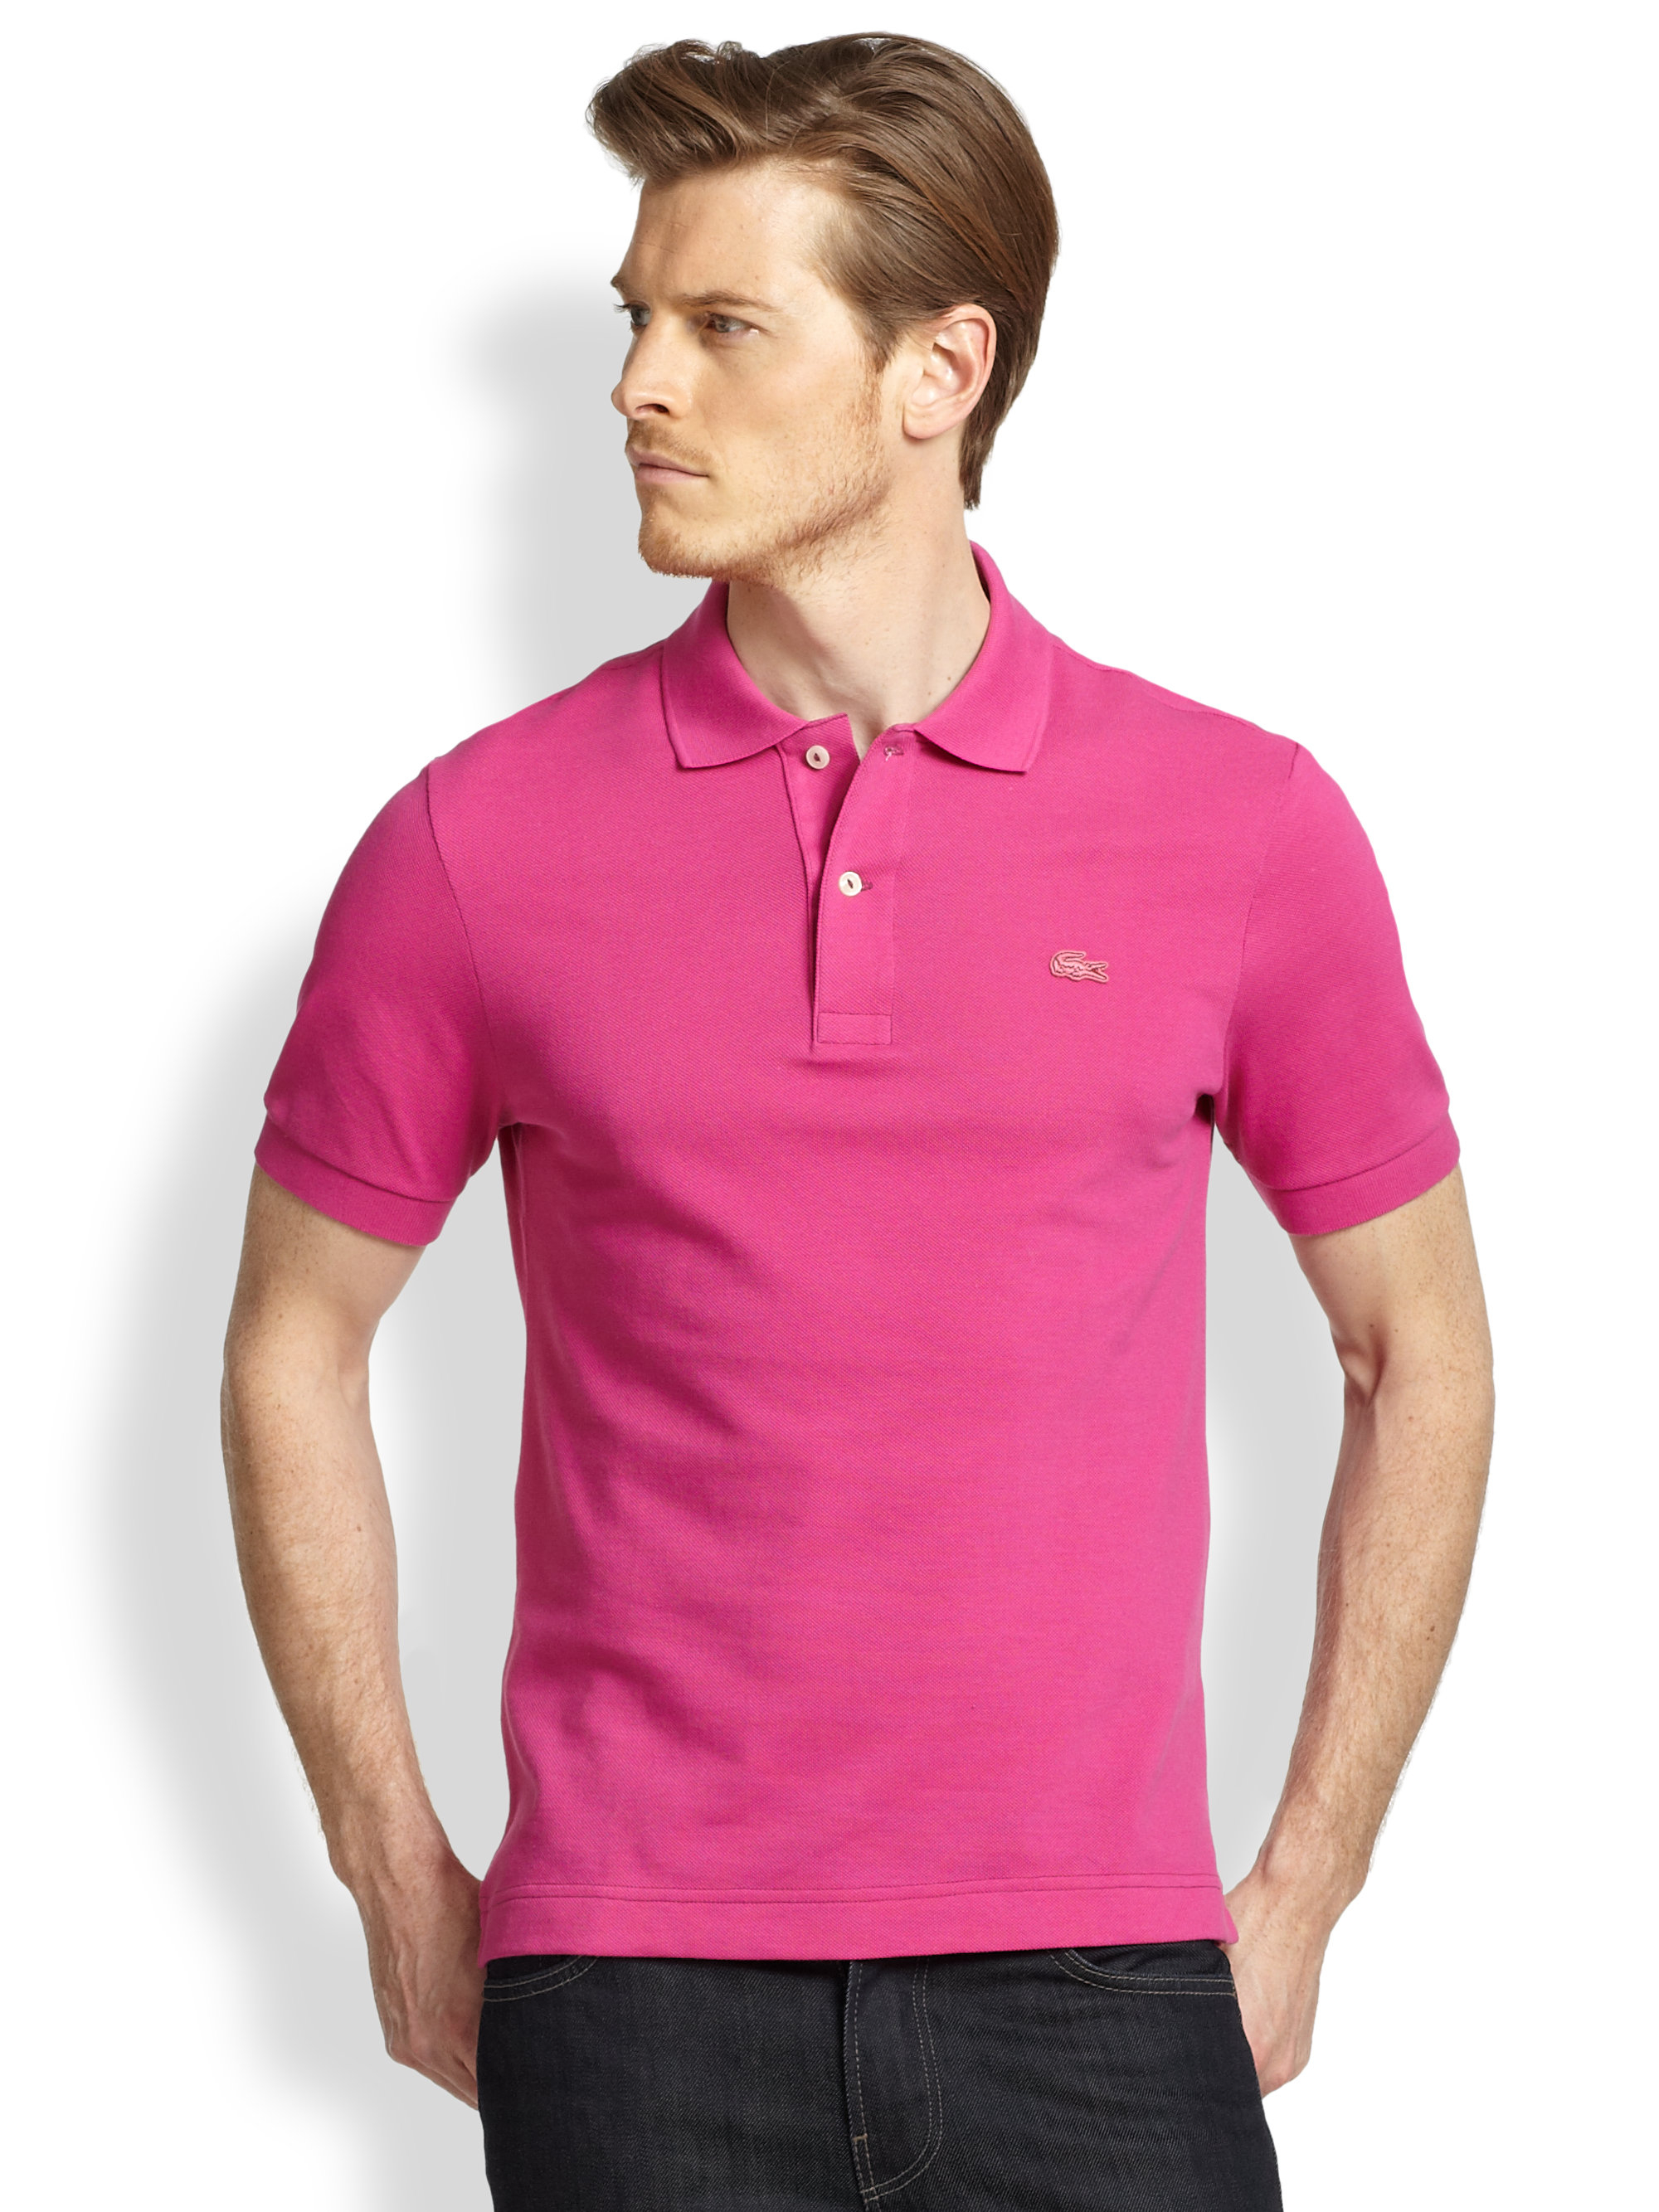 Lacoste Polo Shirts Pink - BCD Tofu House 8bf3f0ff88